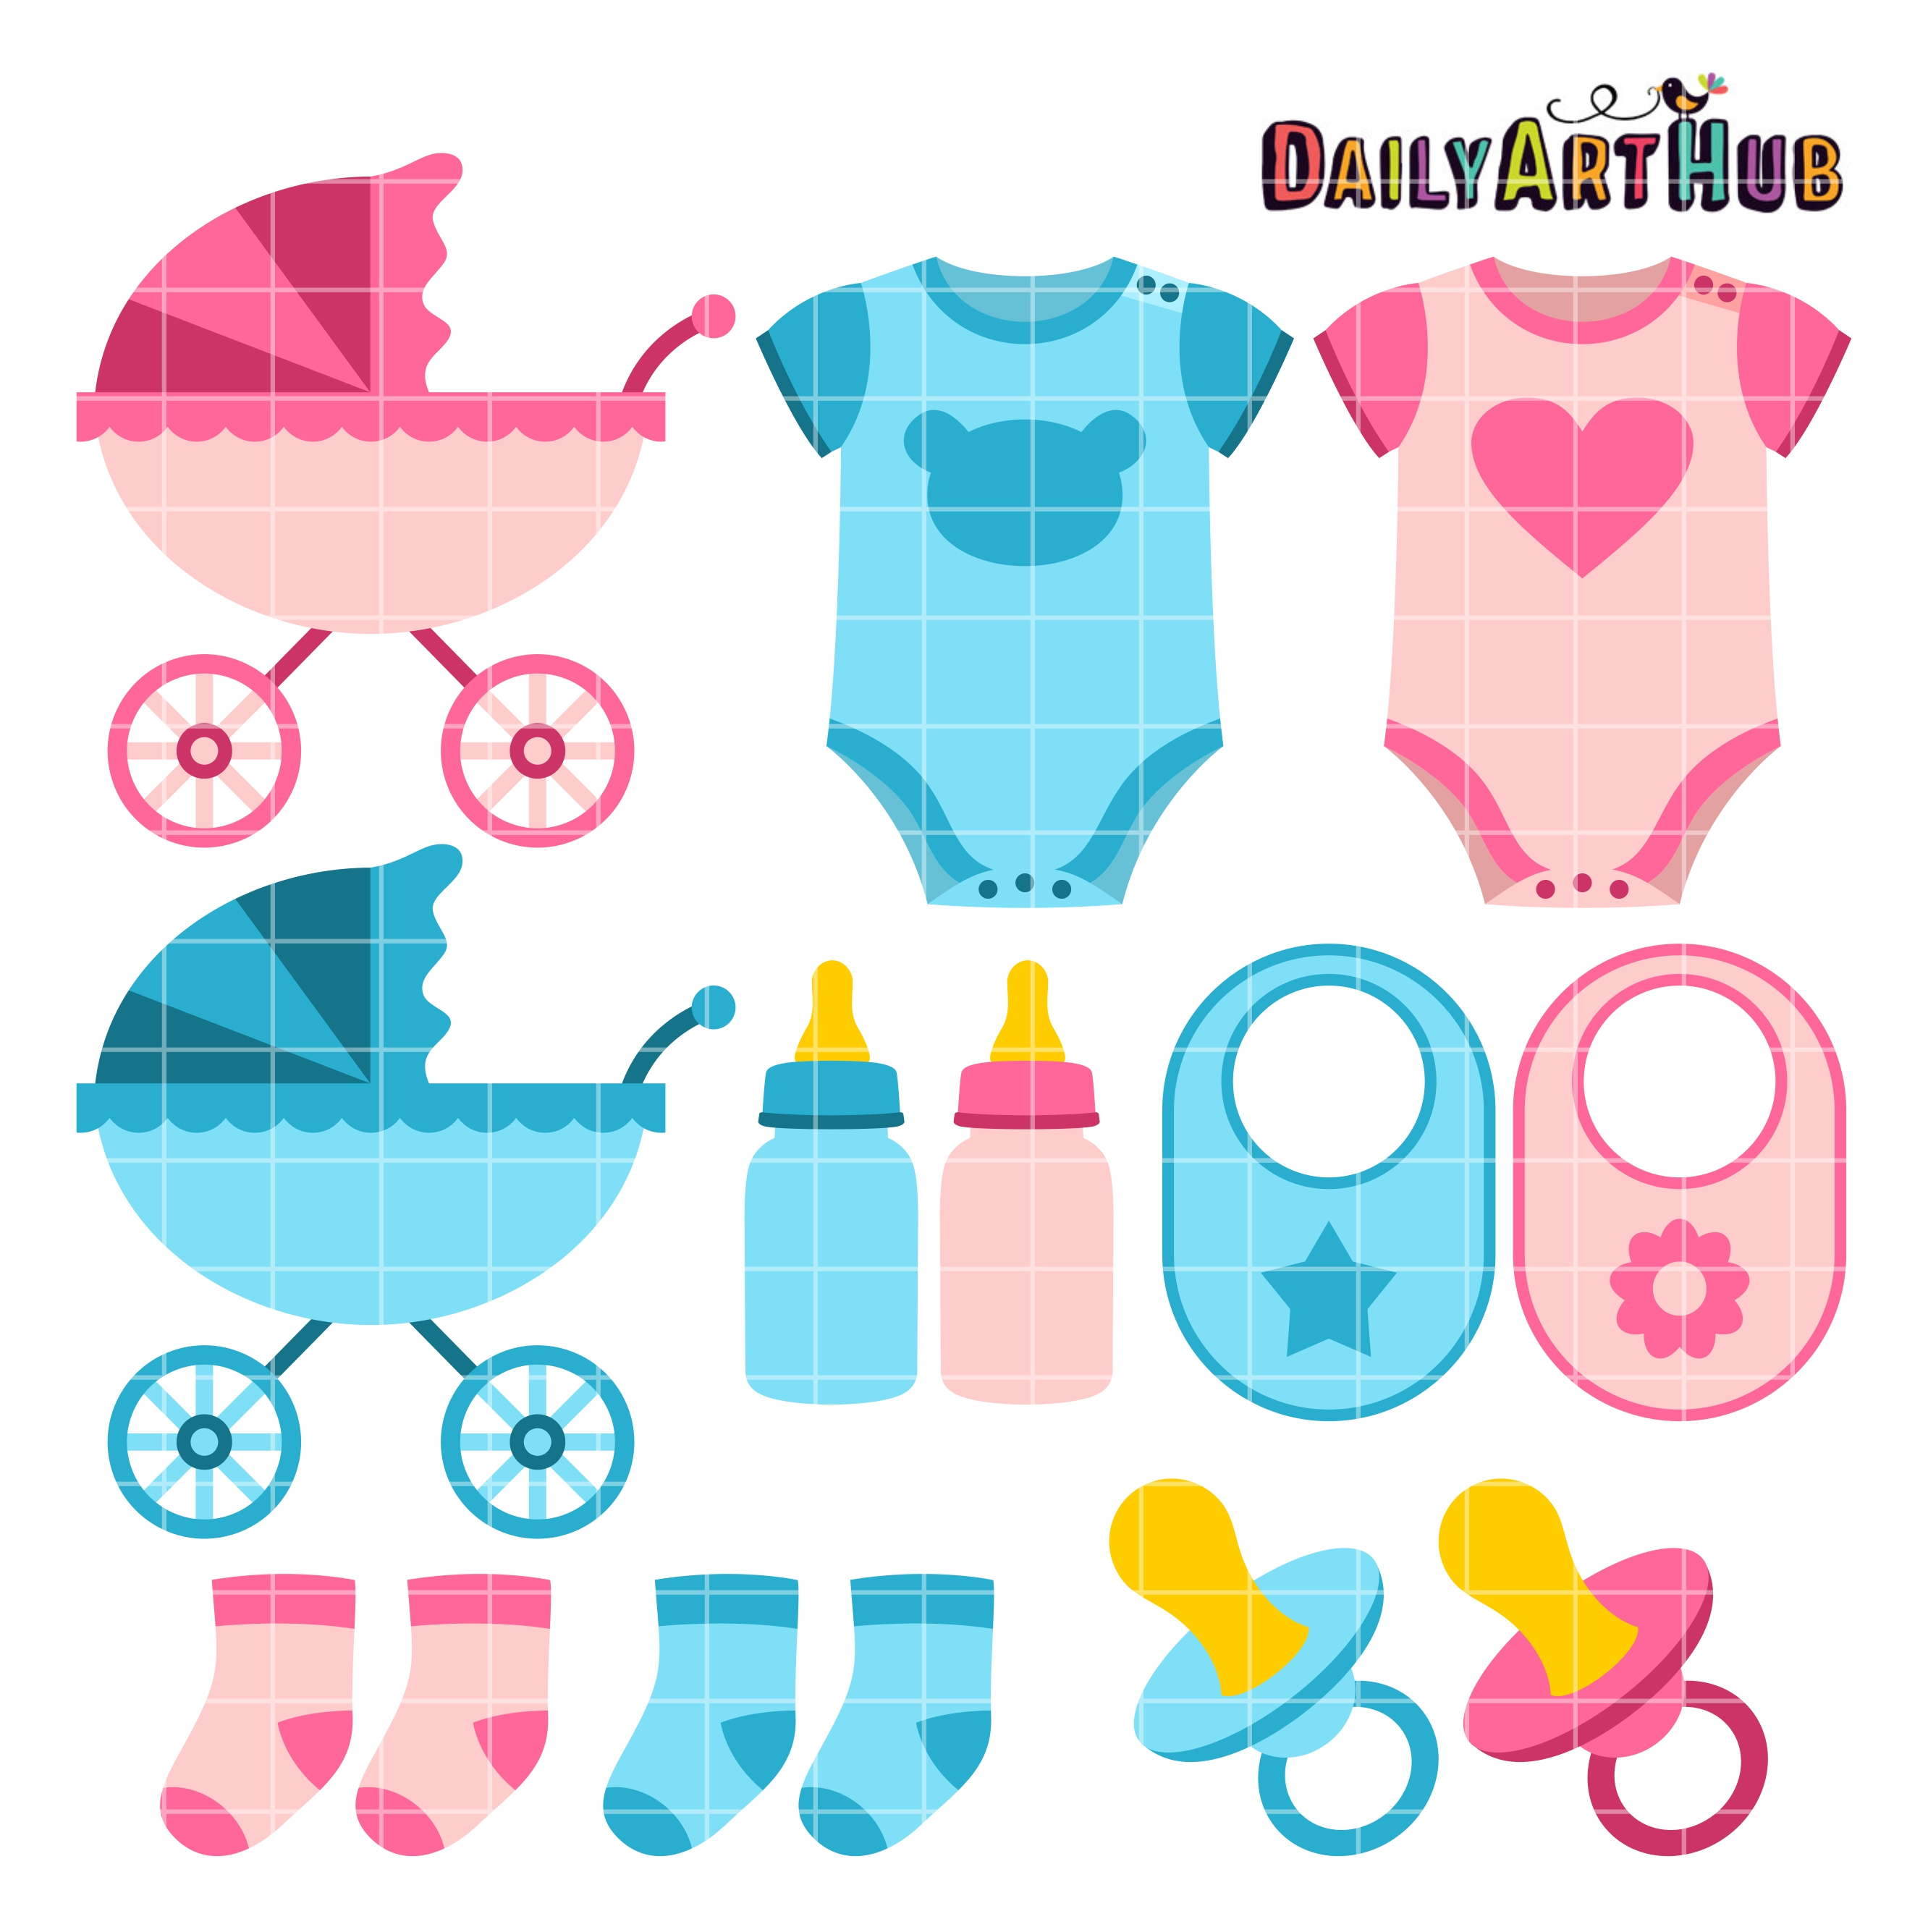 free clipart of baby things - photo #2